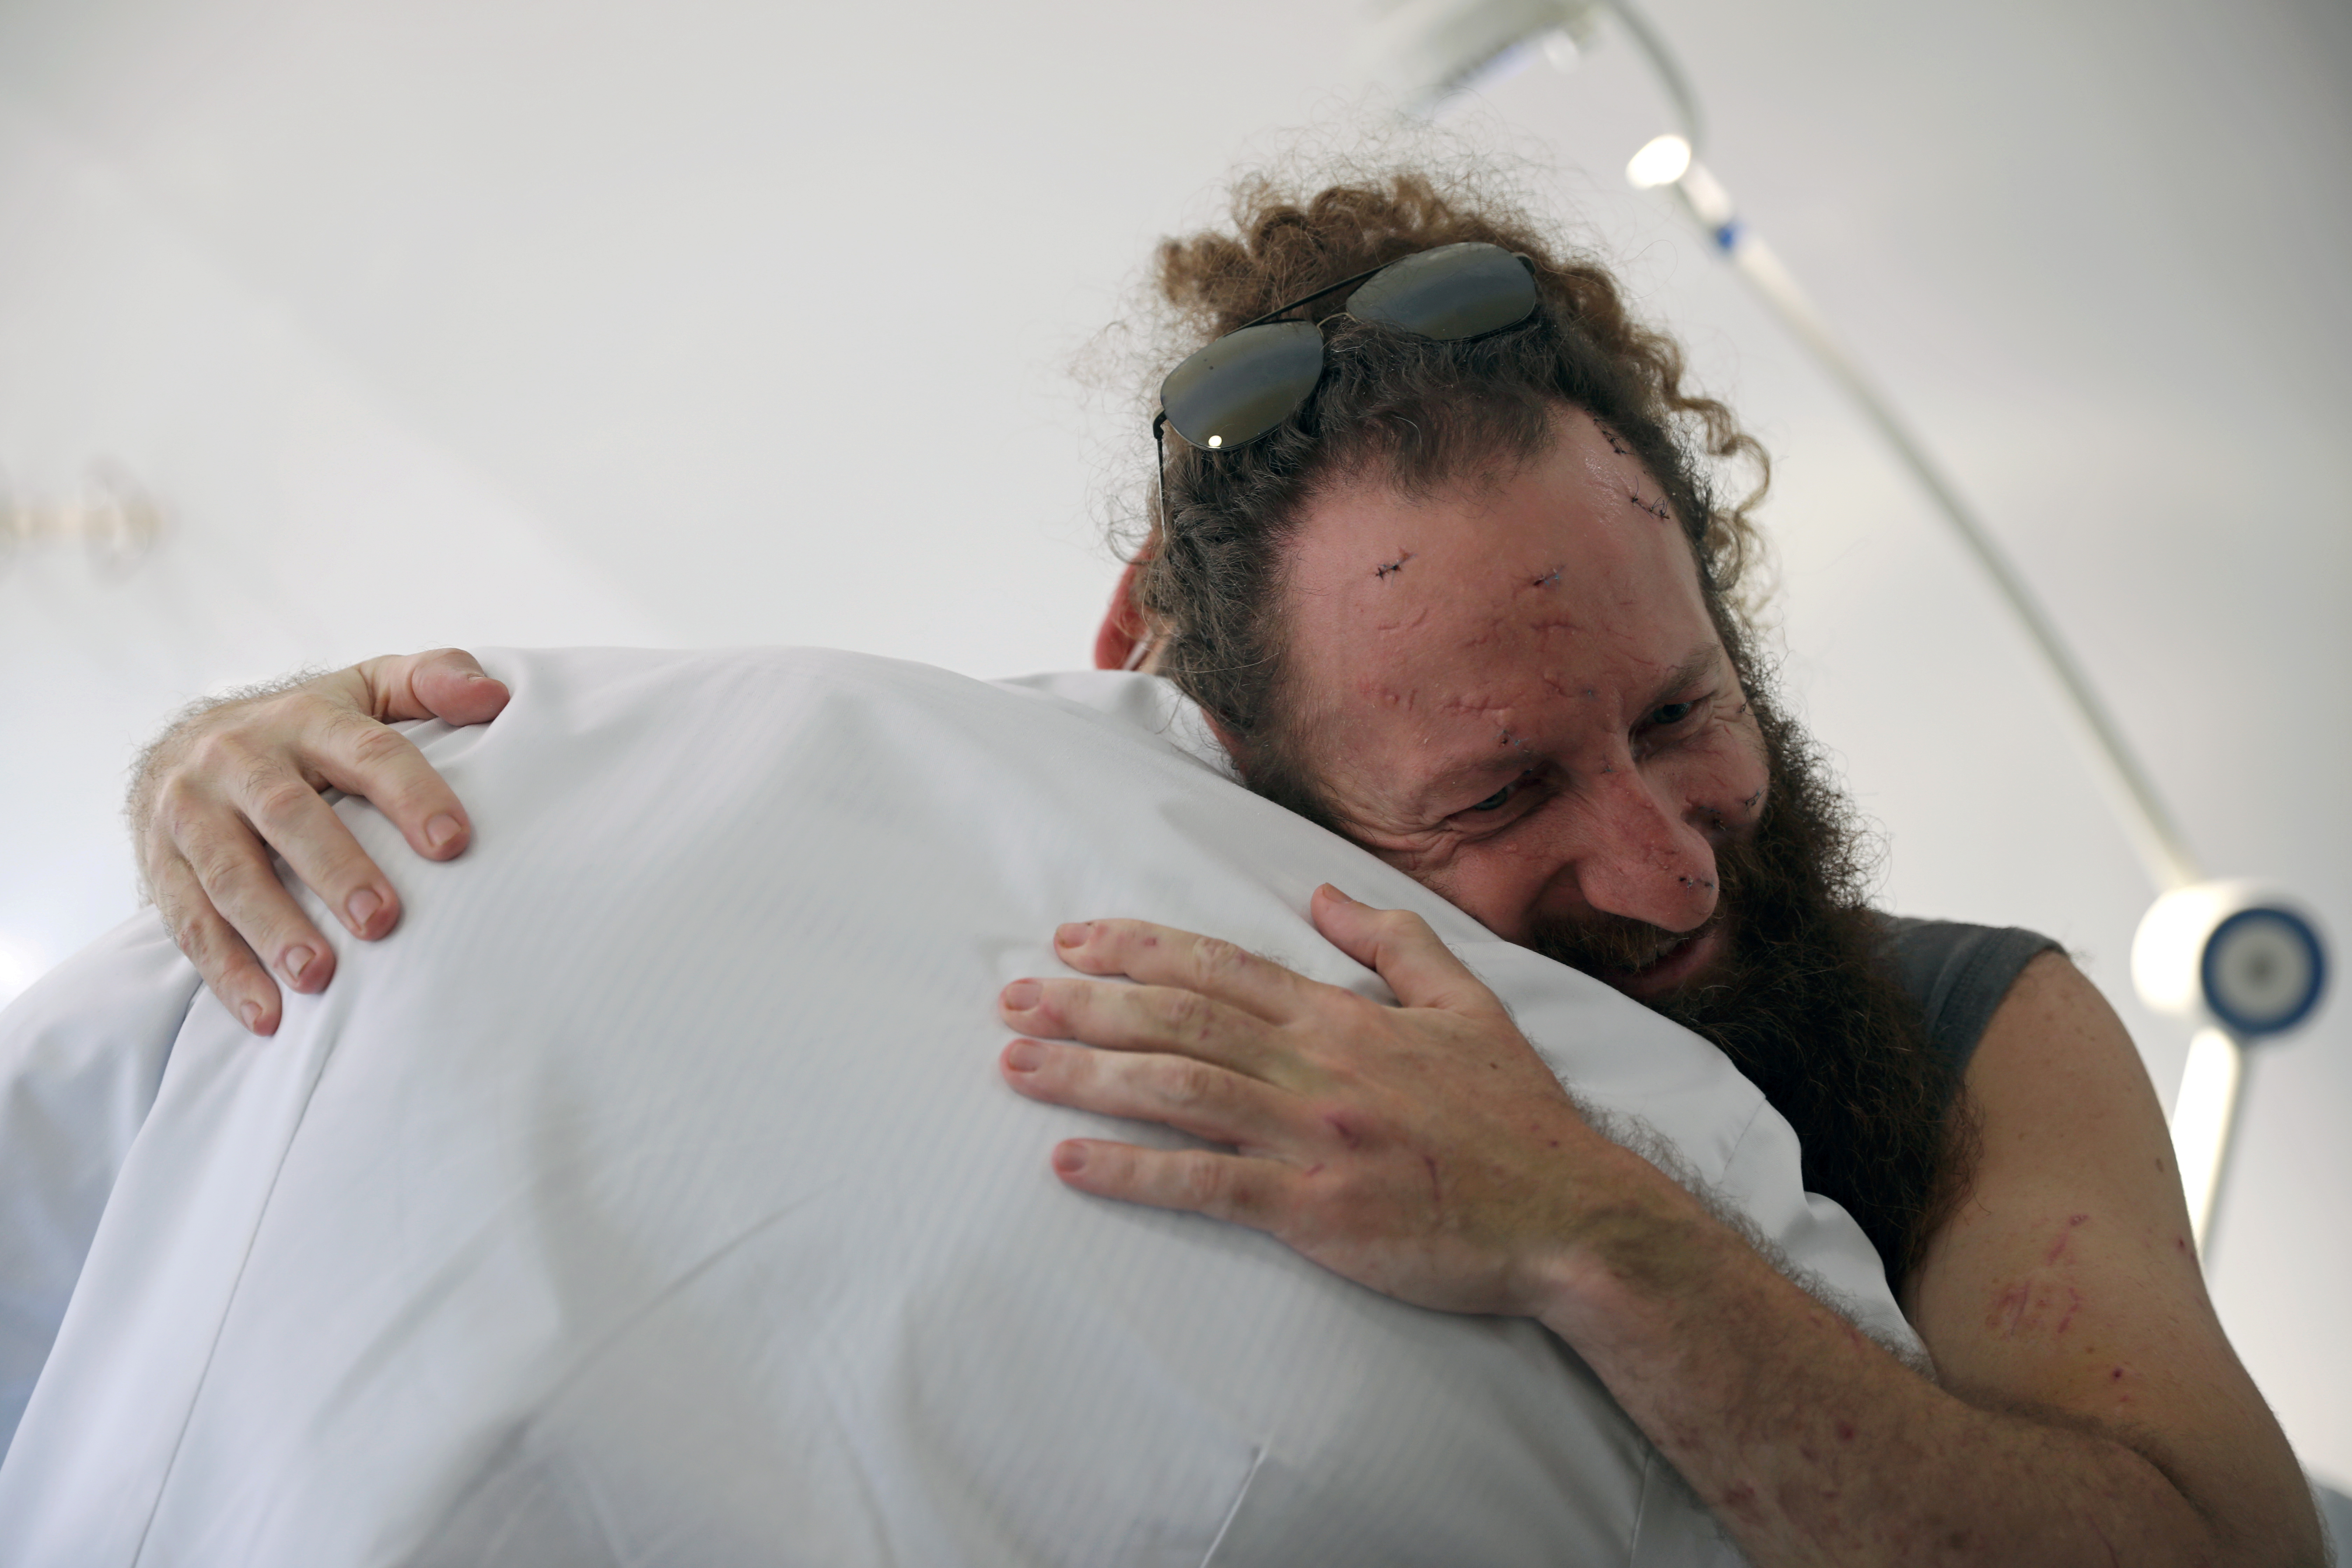 Shady Rizk, 36, hugs plastic surgeon Dr. Joe Baroud, 33, who offers his services for free to people injured by a massive explosion at the port area, in Beirut, Lebanon, August 20, 2020. Picture taken August 20, 2020. REUTERS/Alkis Konstantinidis/File Photo